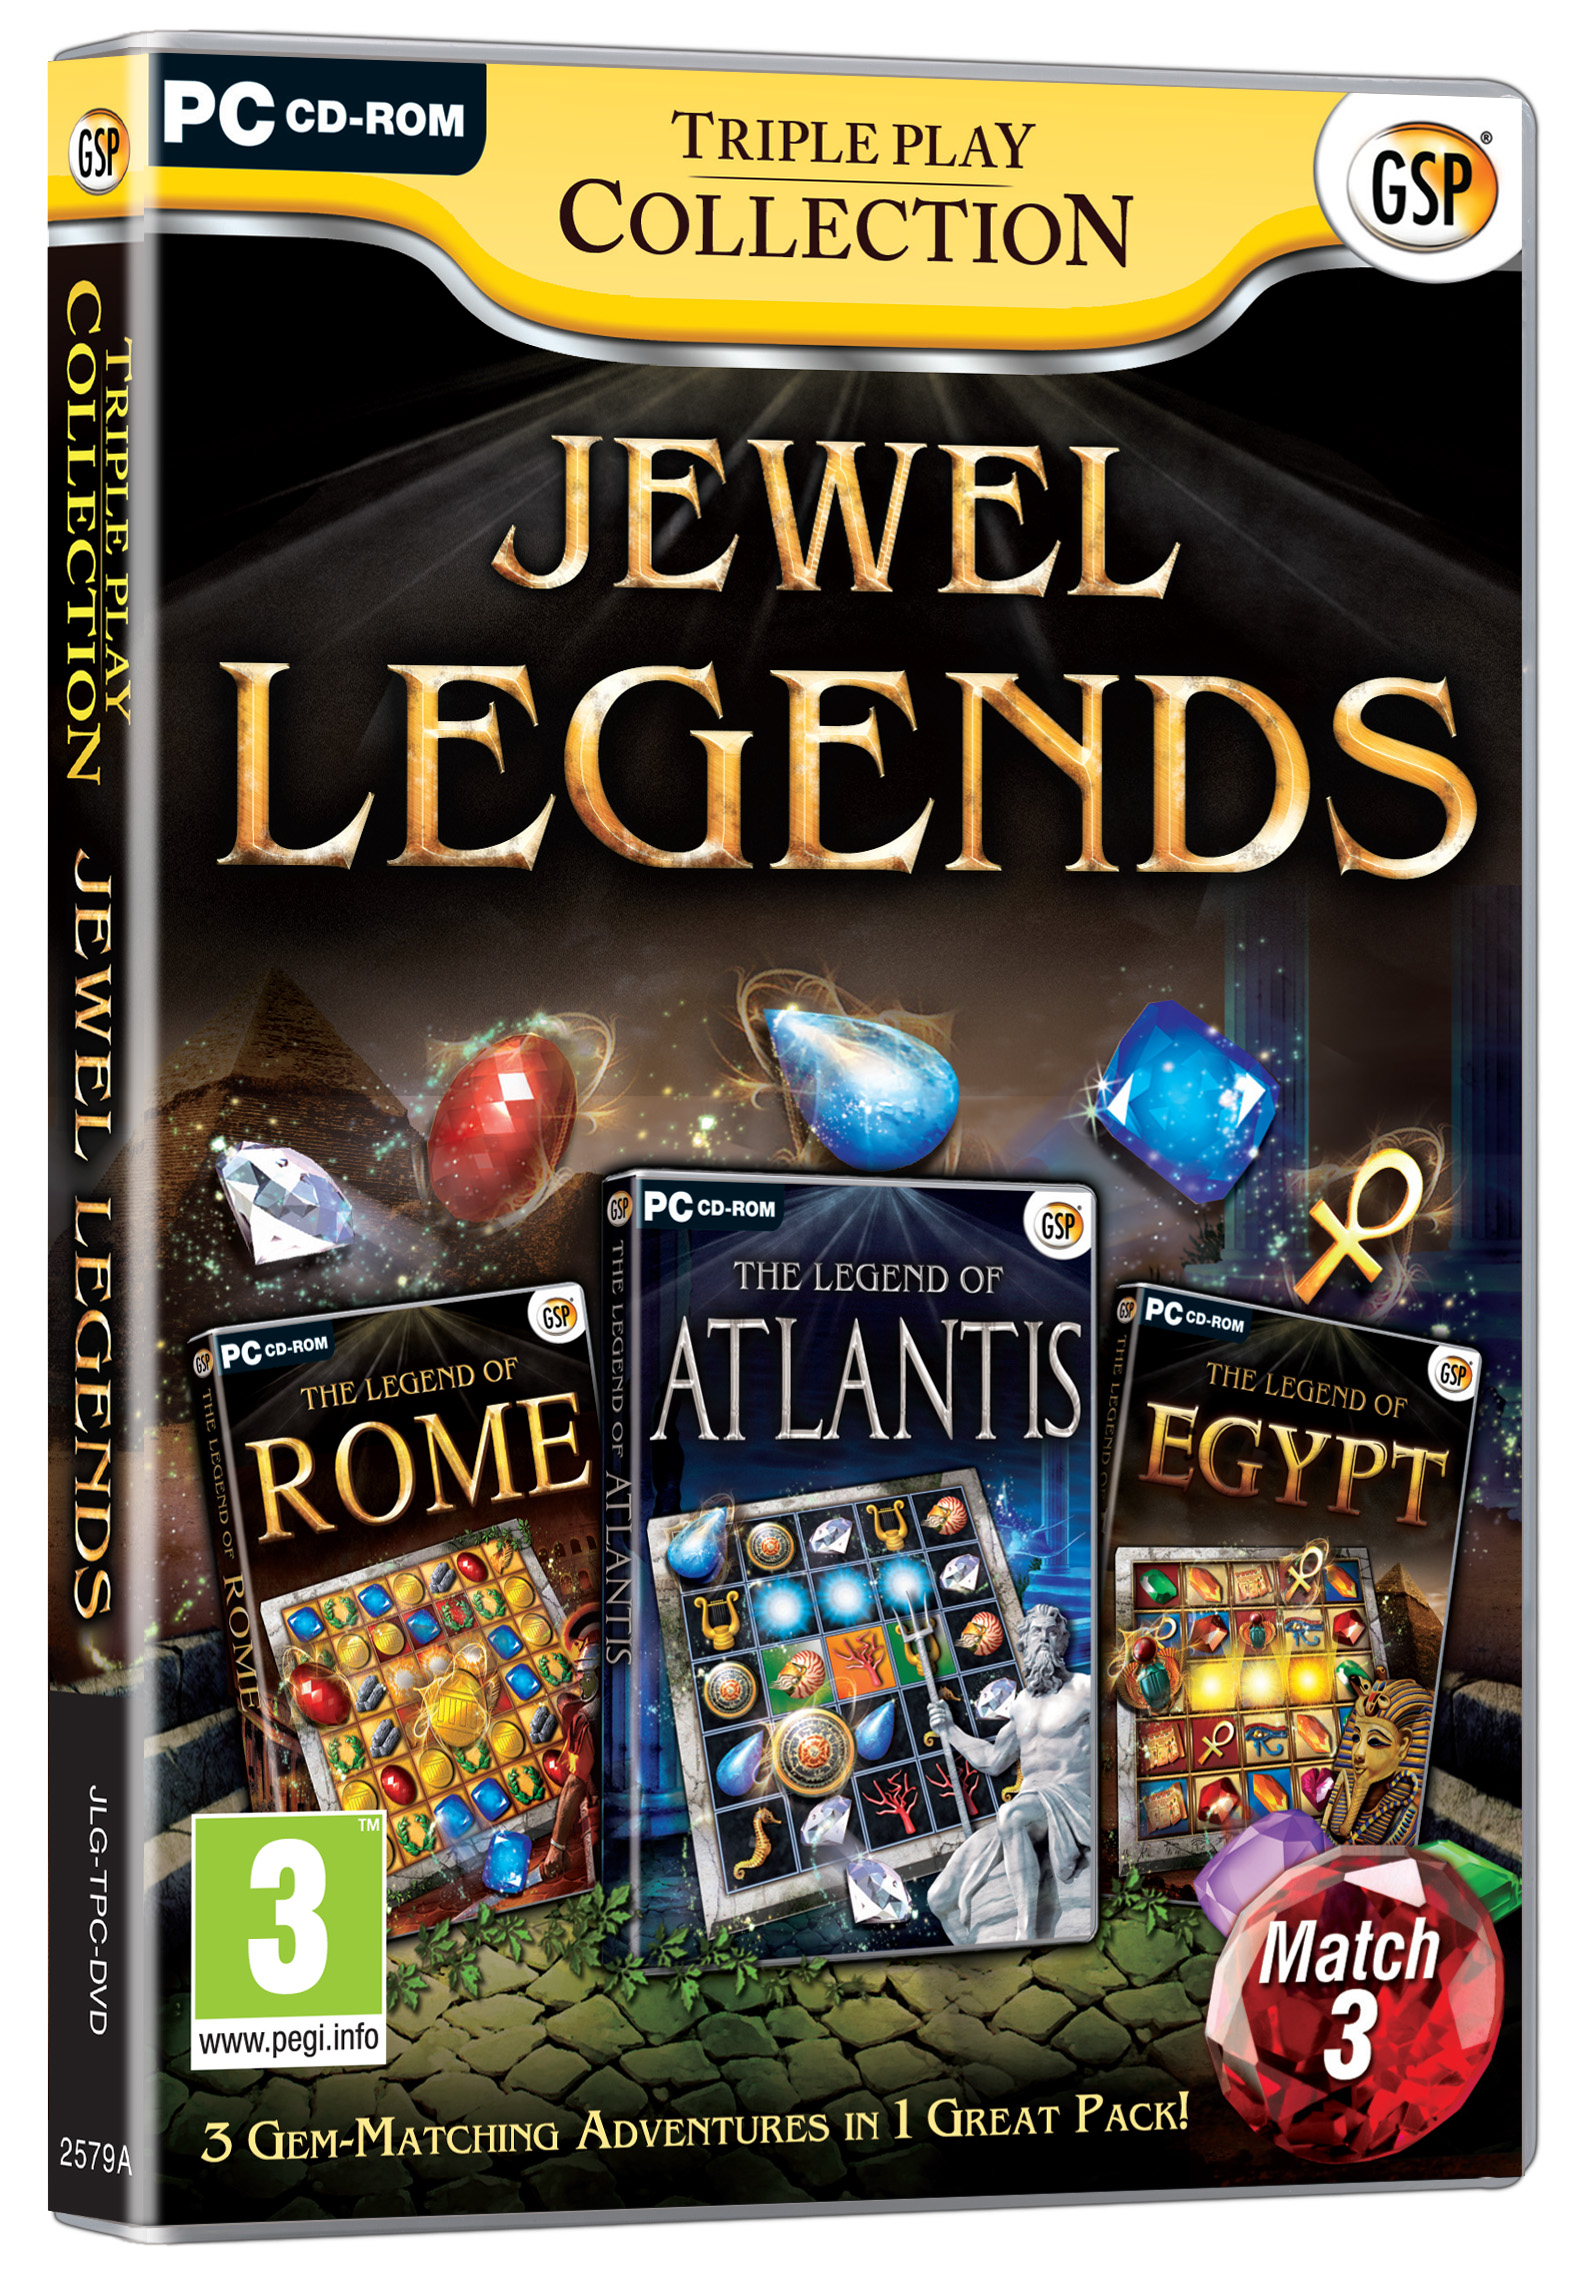 Jewel Legends